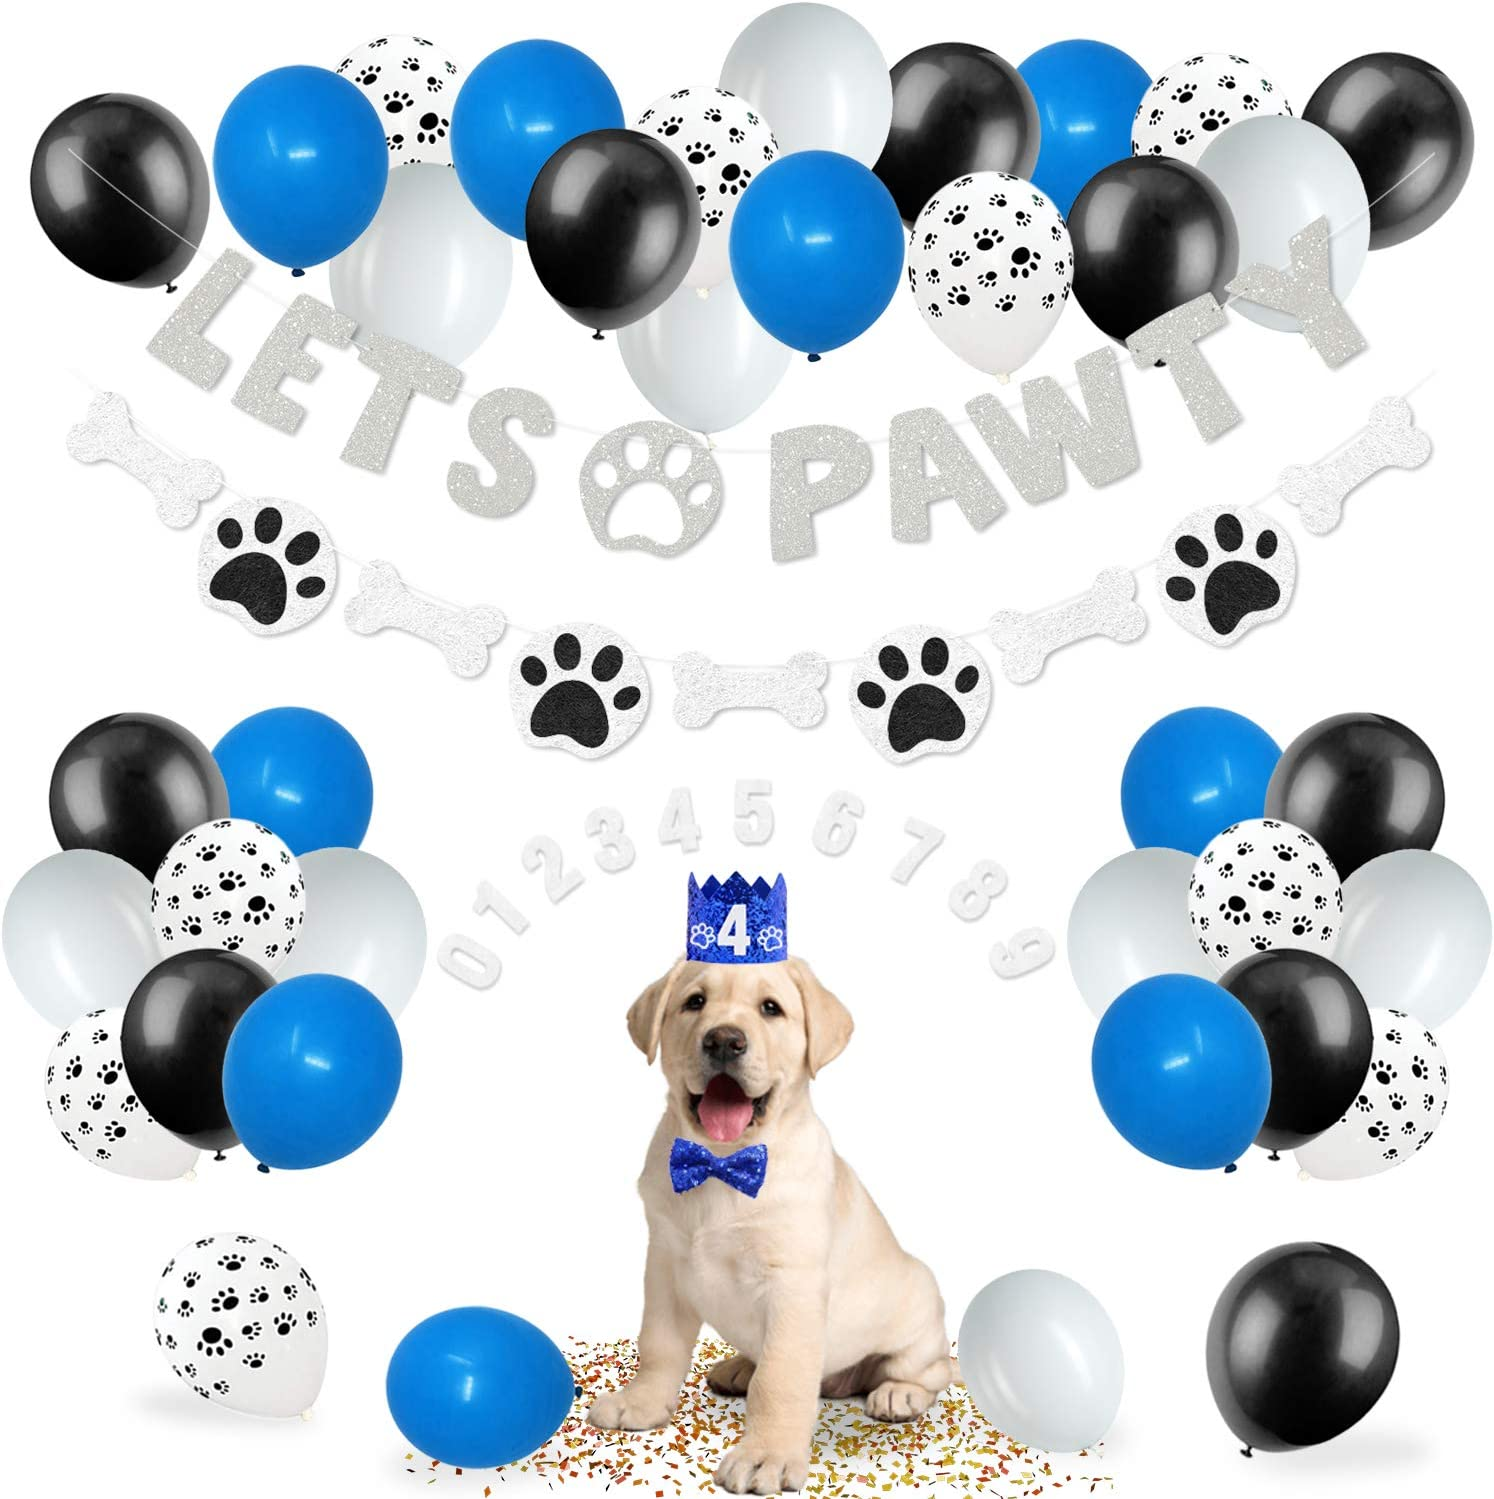 Amazon Com 44 Pack Lets Pawty Puppy Boys Birthday Favors Pet Adoption Party Supplies Kits Silver Glitter Banner Paws Print Balloons Blue Hat Bow Tie Doggie Bone Photo Props Ideas Woof Ruff Decoration Toys